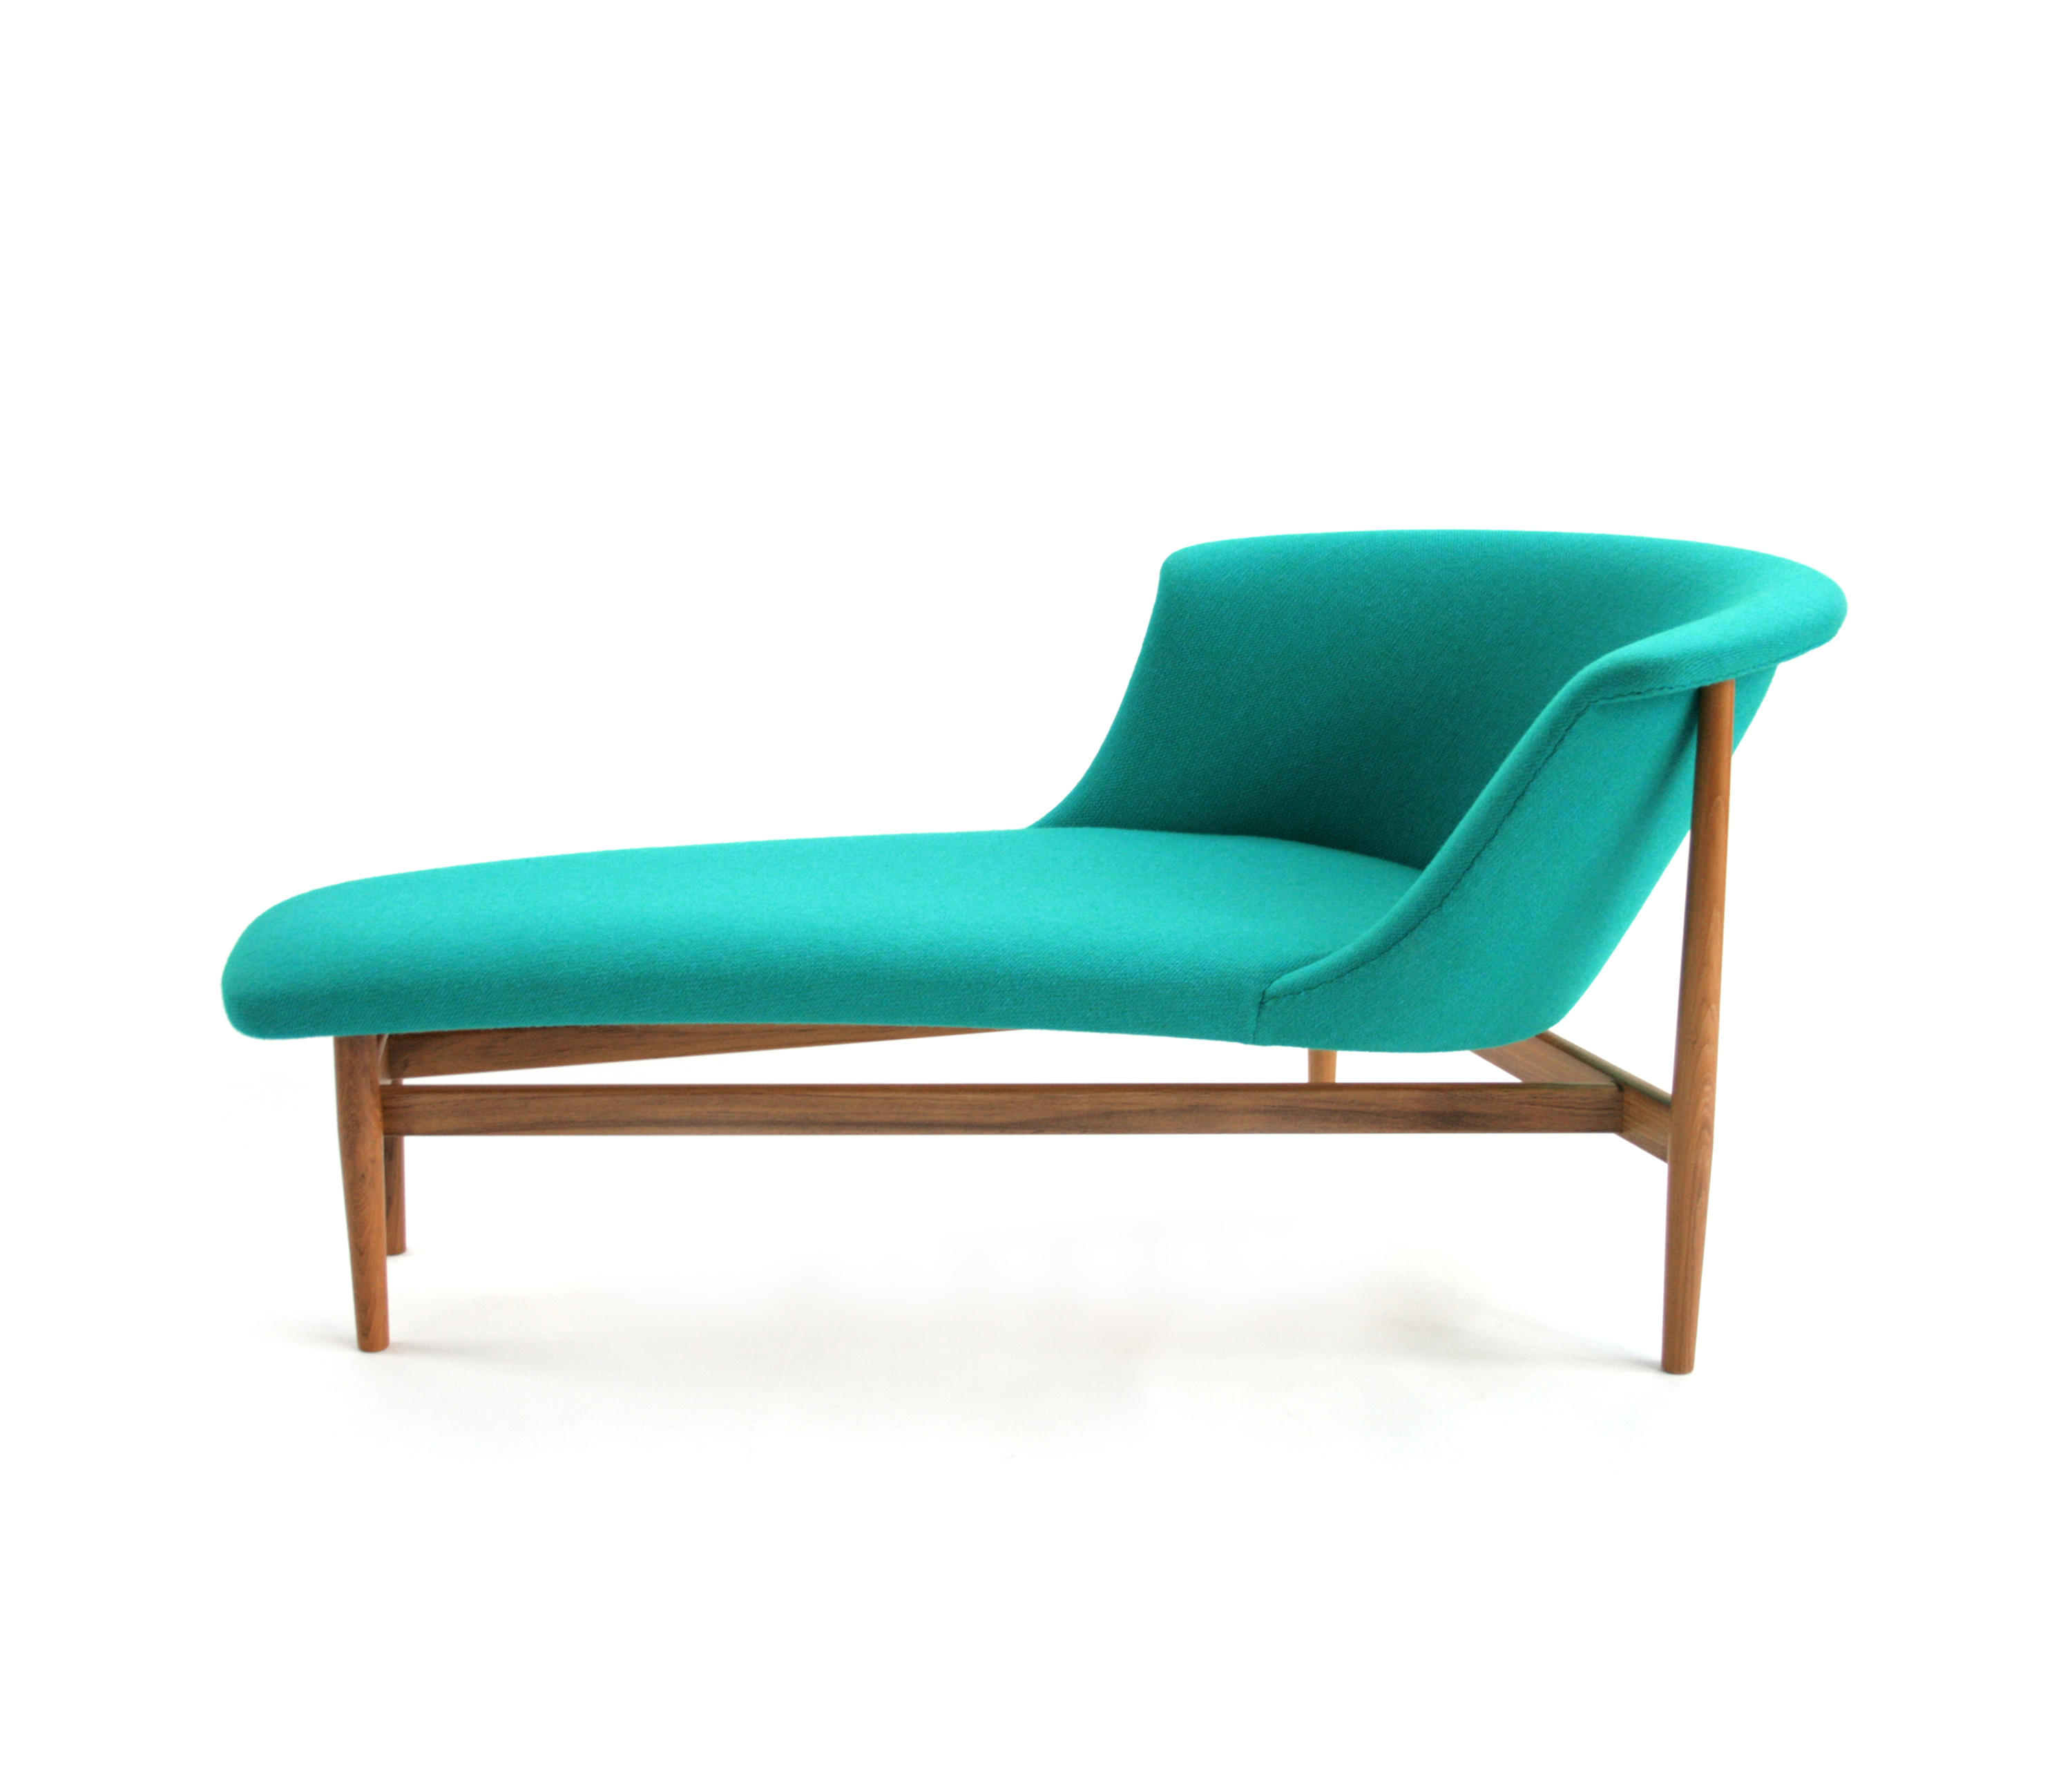 Nd 07 chaise longue chaise longues from kitani japan inc for Chaise longue furniture